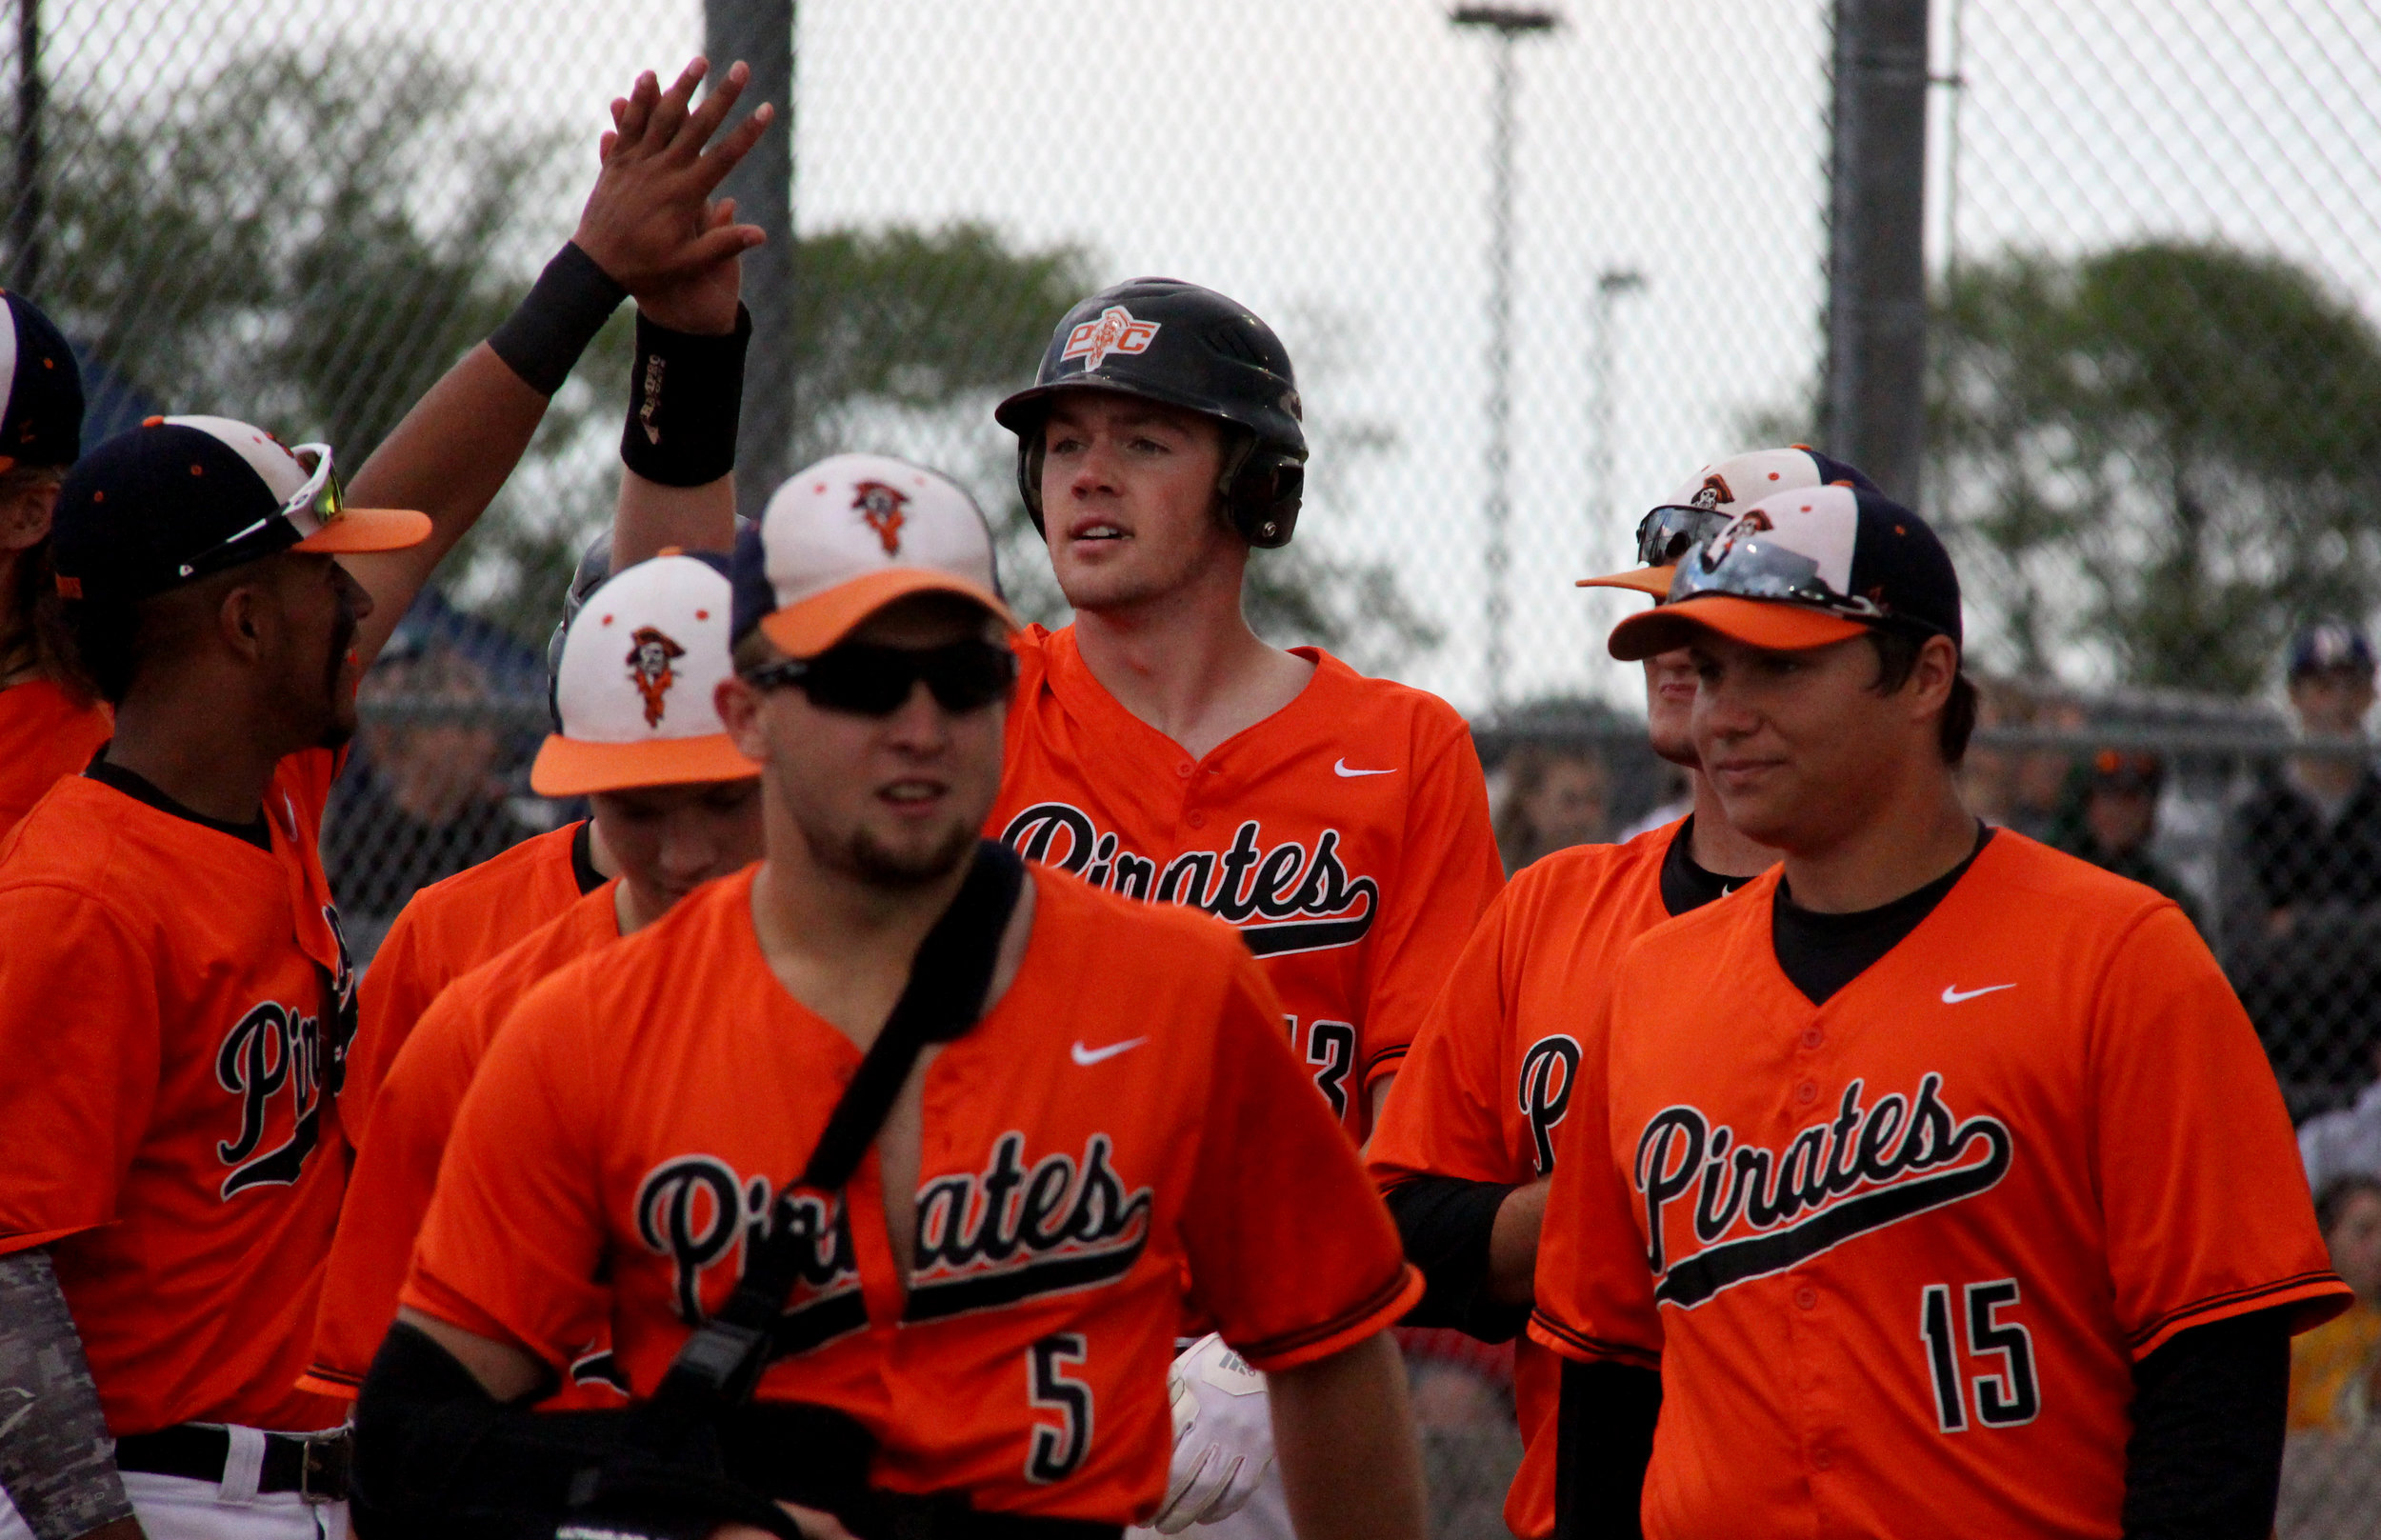 ROSS MARTIN/Citizen photo Platte County senior designated hitter Drew Parmeley, center, celebrates his fifth inning home run during a 9-1 win over Liberty North in a Class 5 sectional Tuesday, May 23 at Liberty North High School in Liberty, Mo.